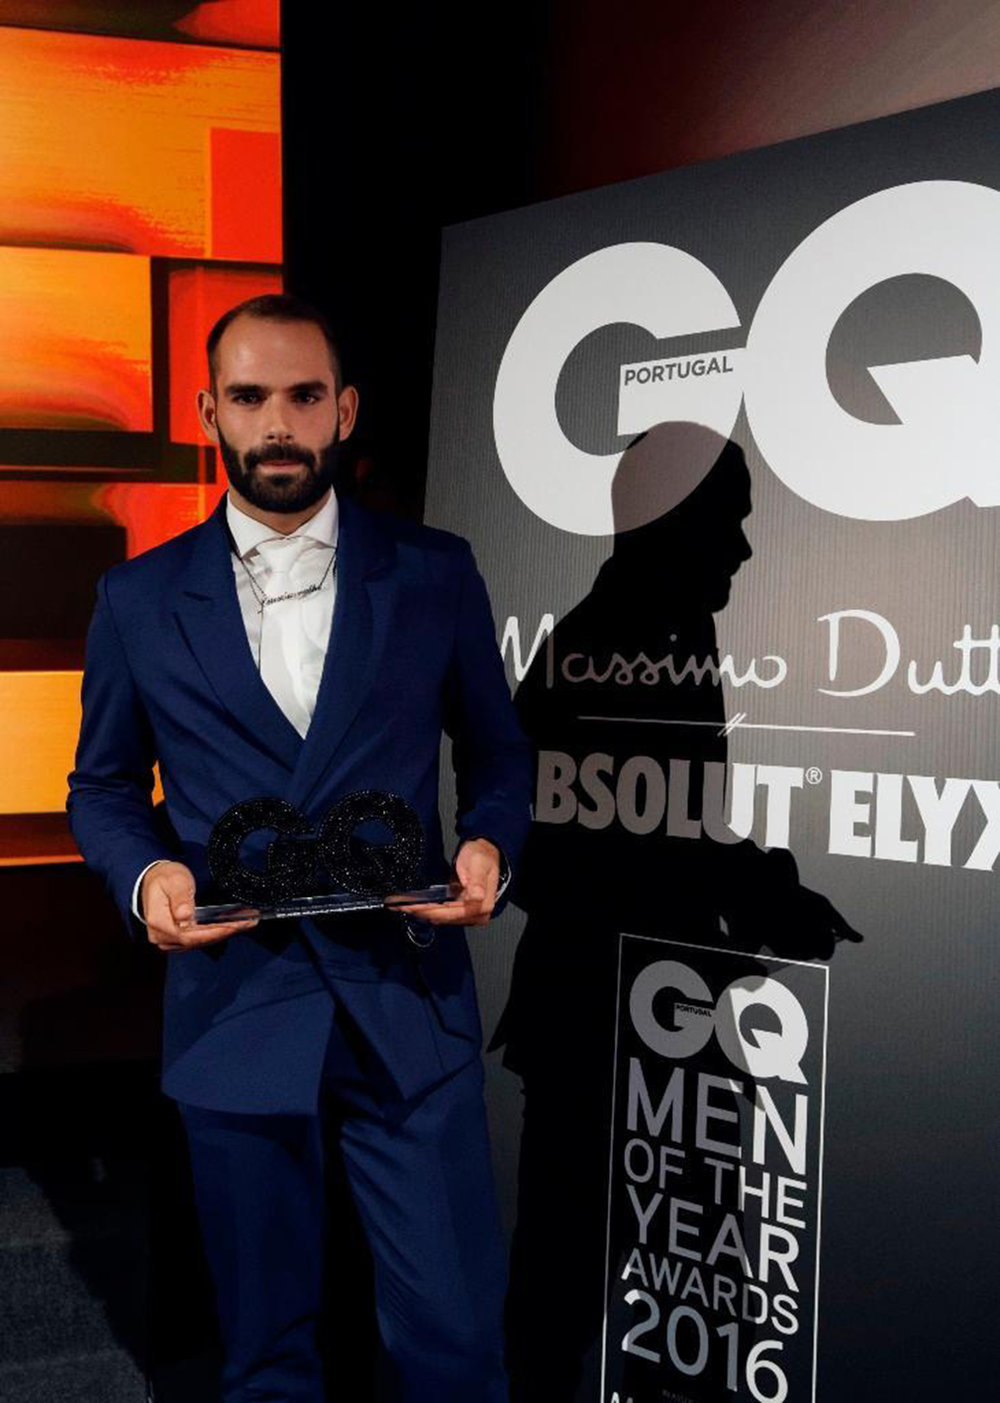 award for GQ -MAN OF THE YEAR - FASHION DESIGNER CATEGORY 2016 AWARDS - portugal DECEMBER 2016